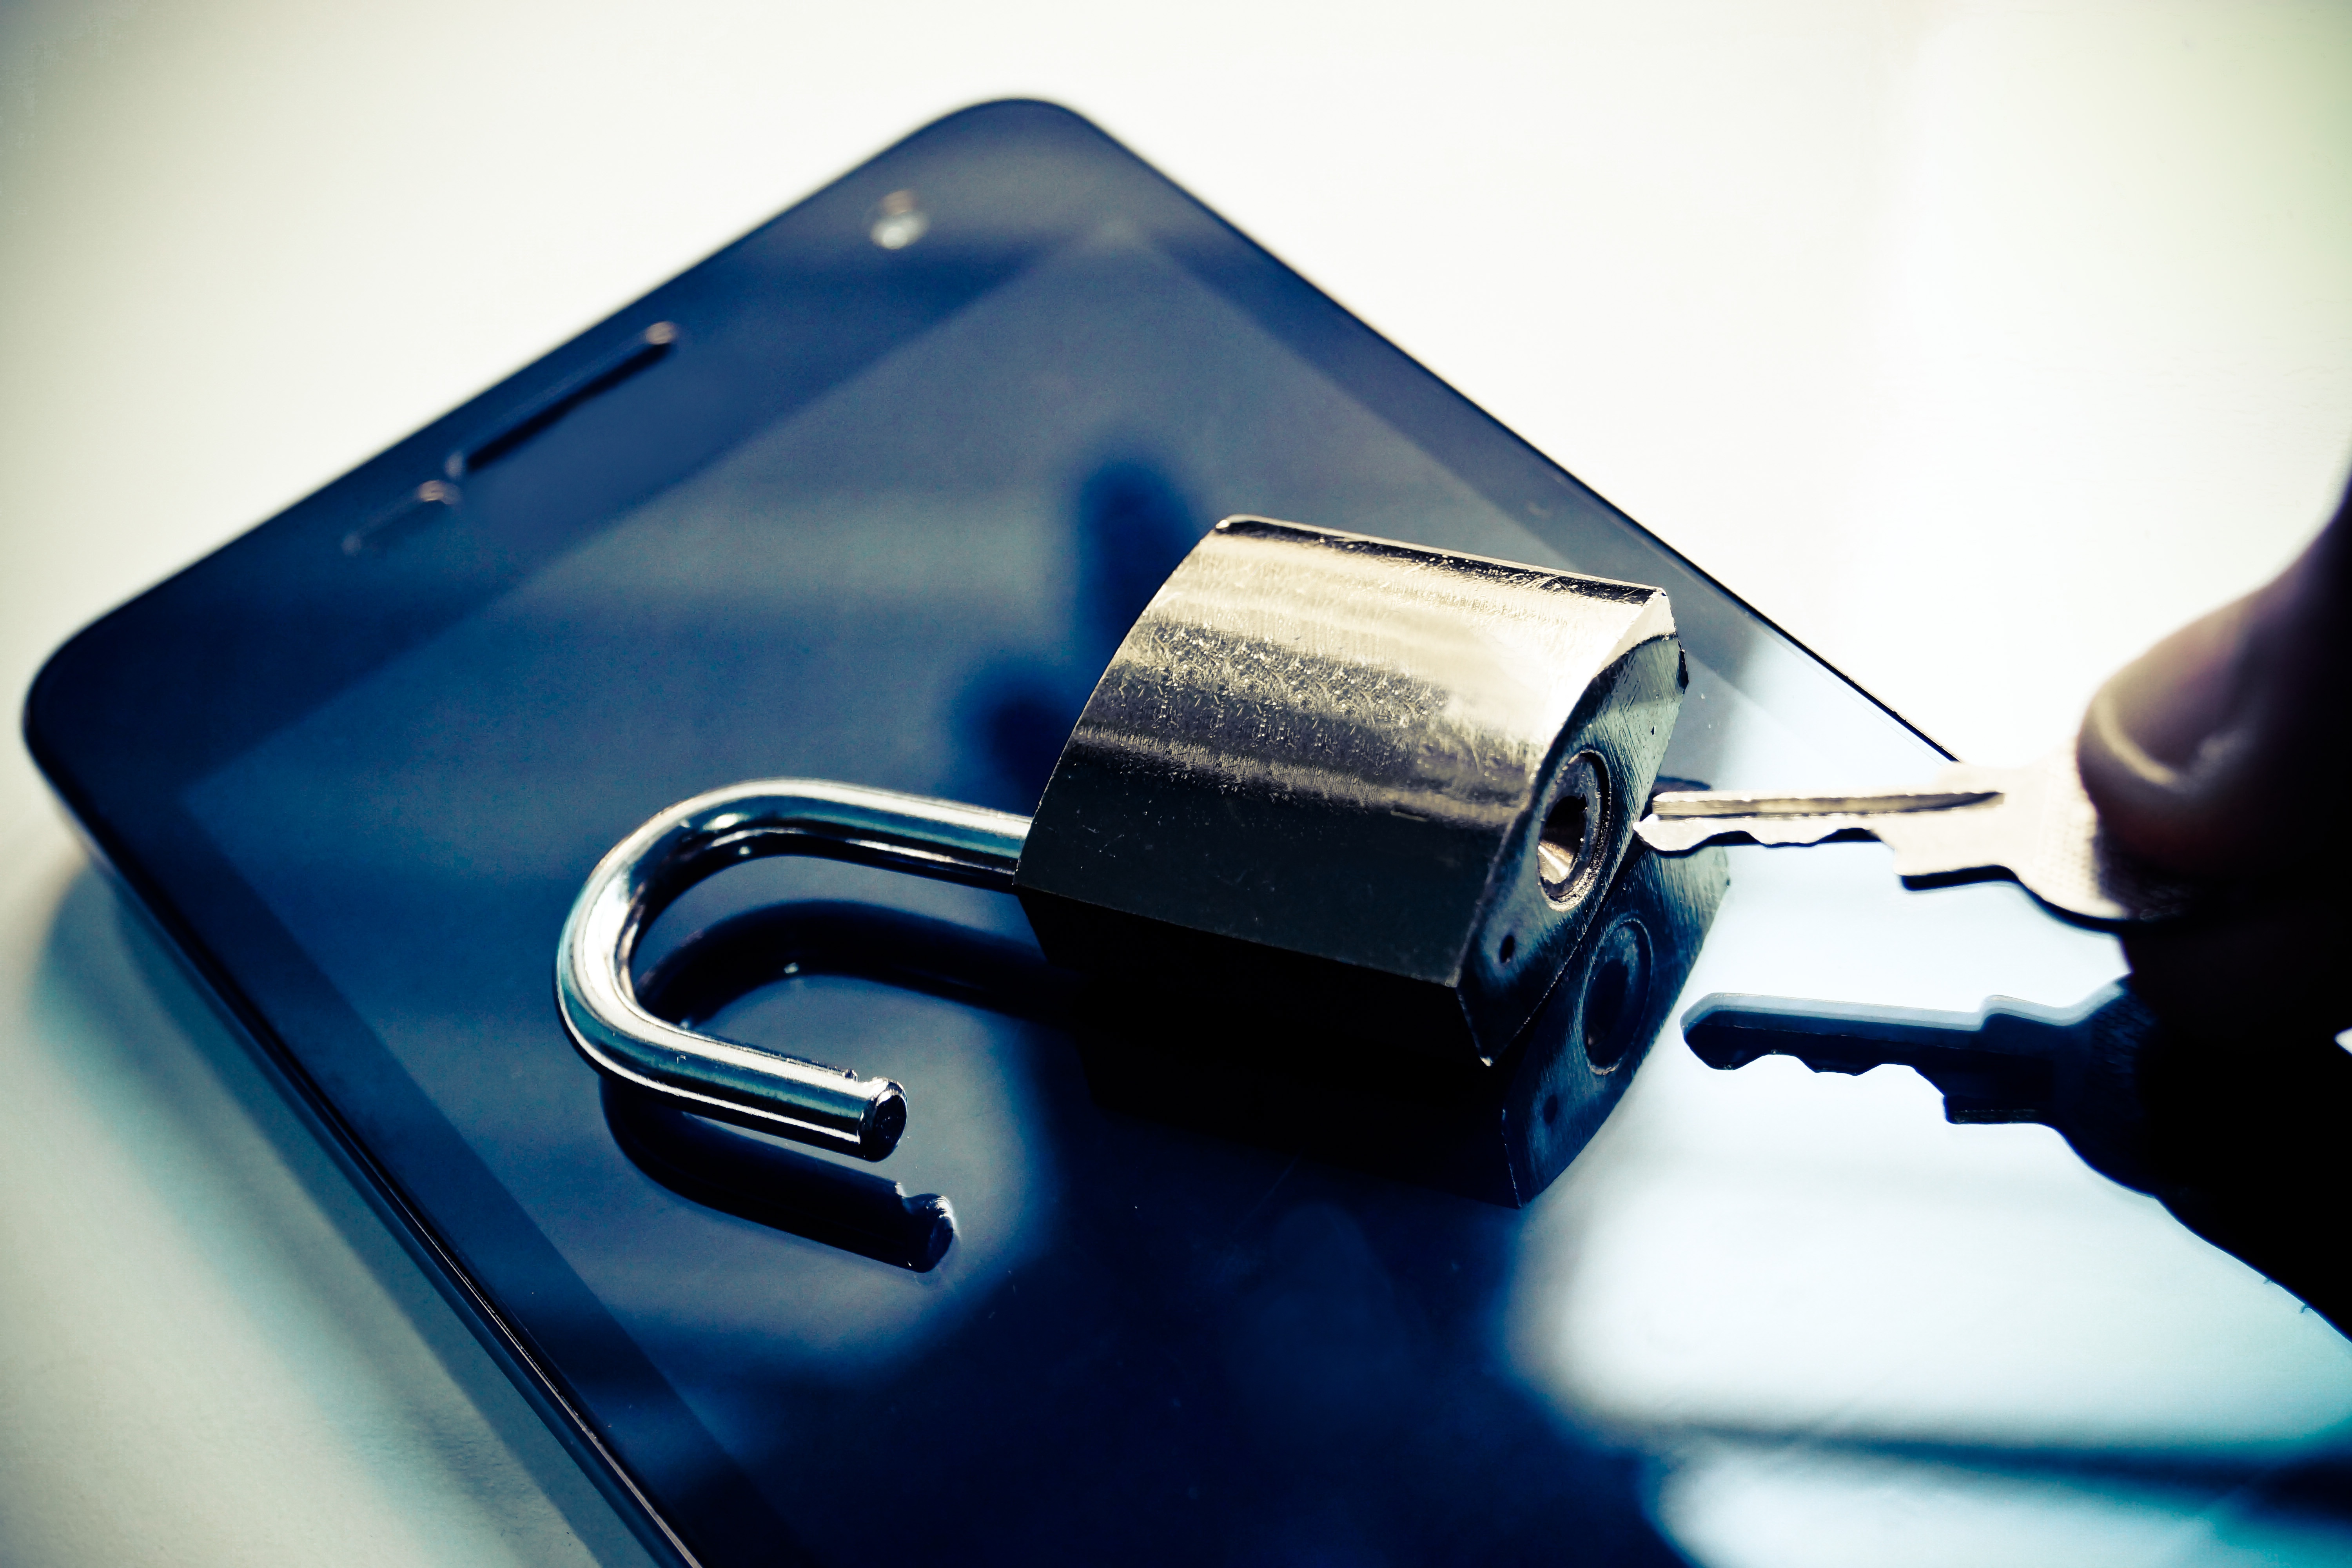 Security Critical for Enterprise Mobility Market